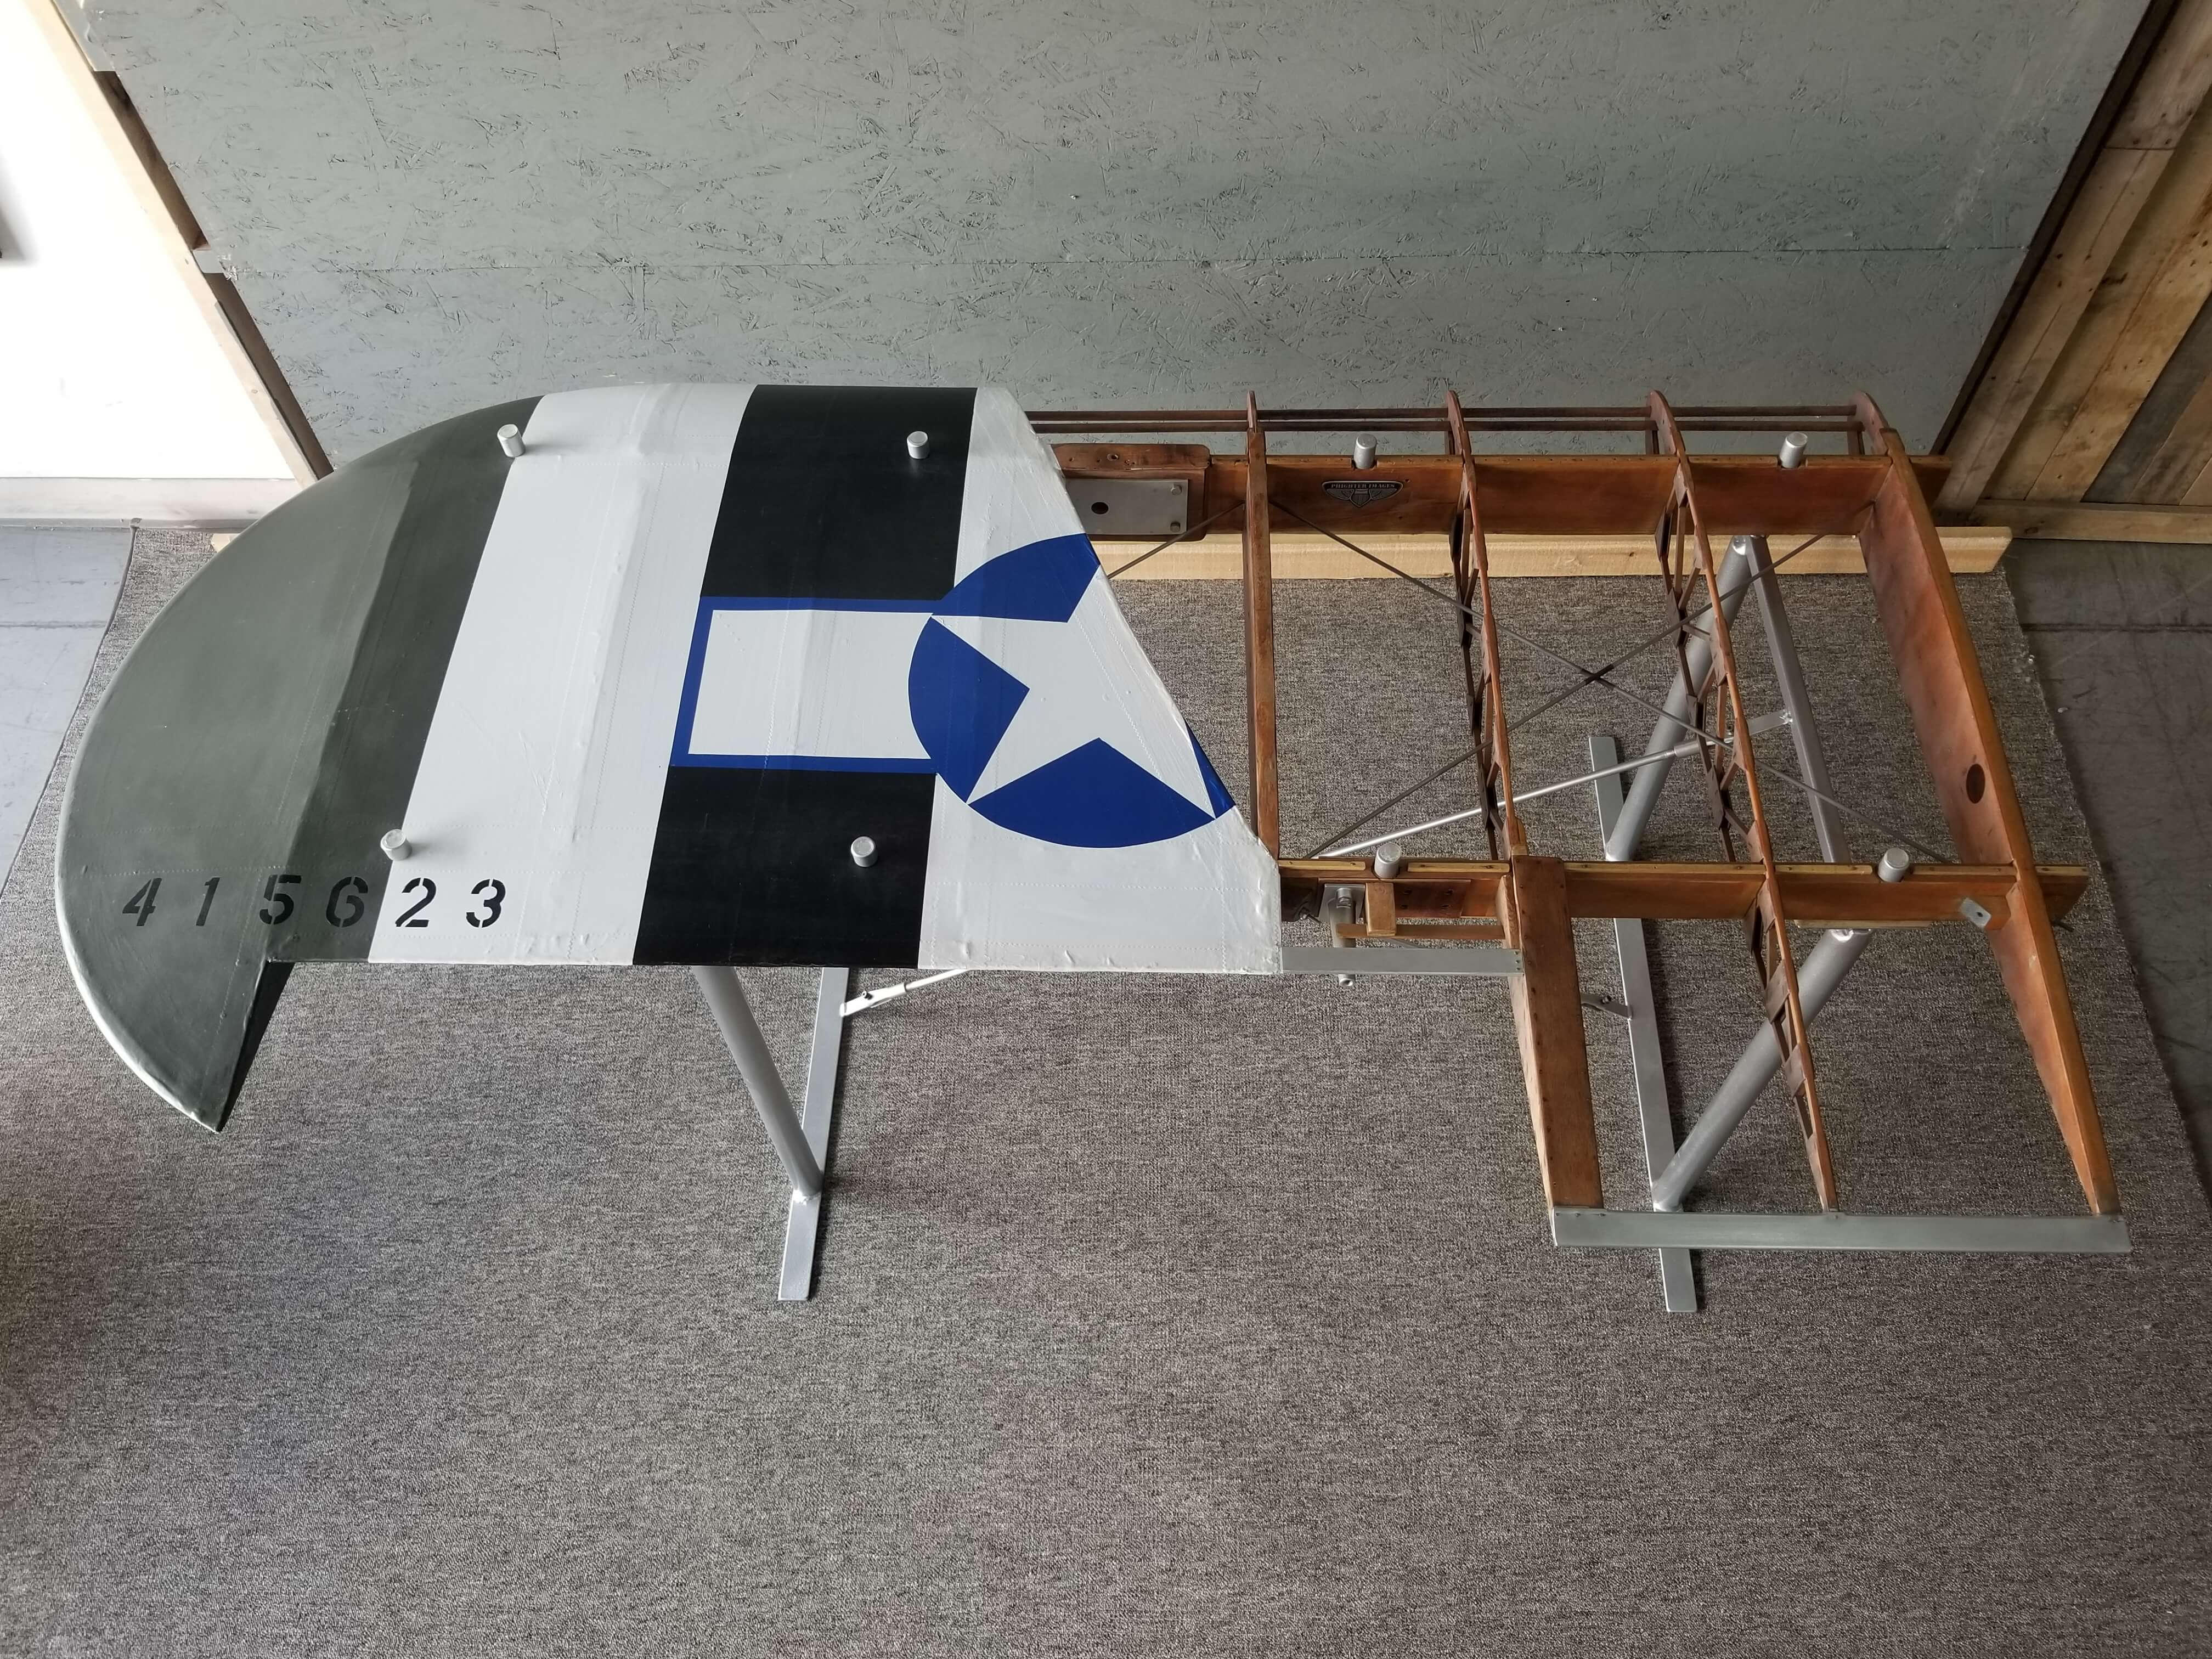 We Now Provide Aviation Theme Decor Interior Design Consulting Offer Complete Chairs And Seating Line